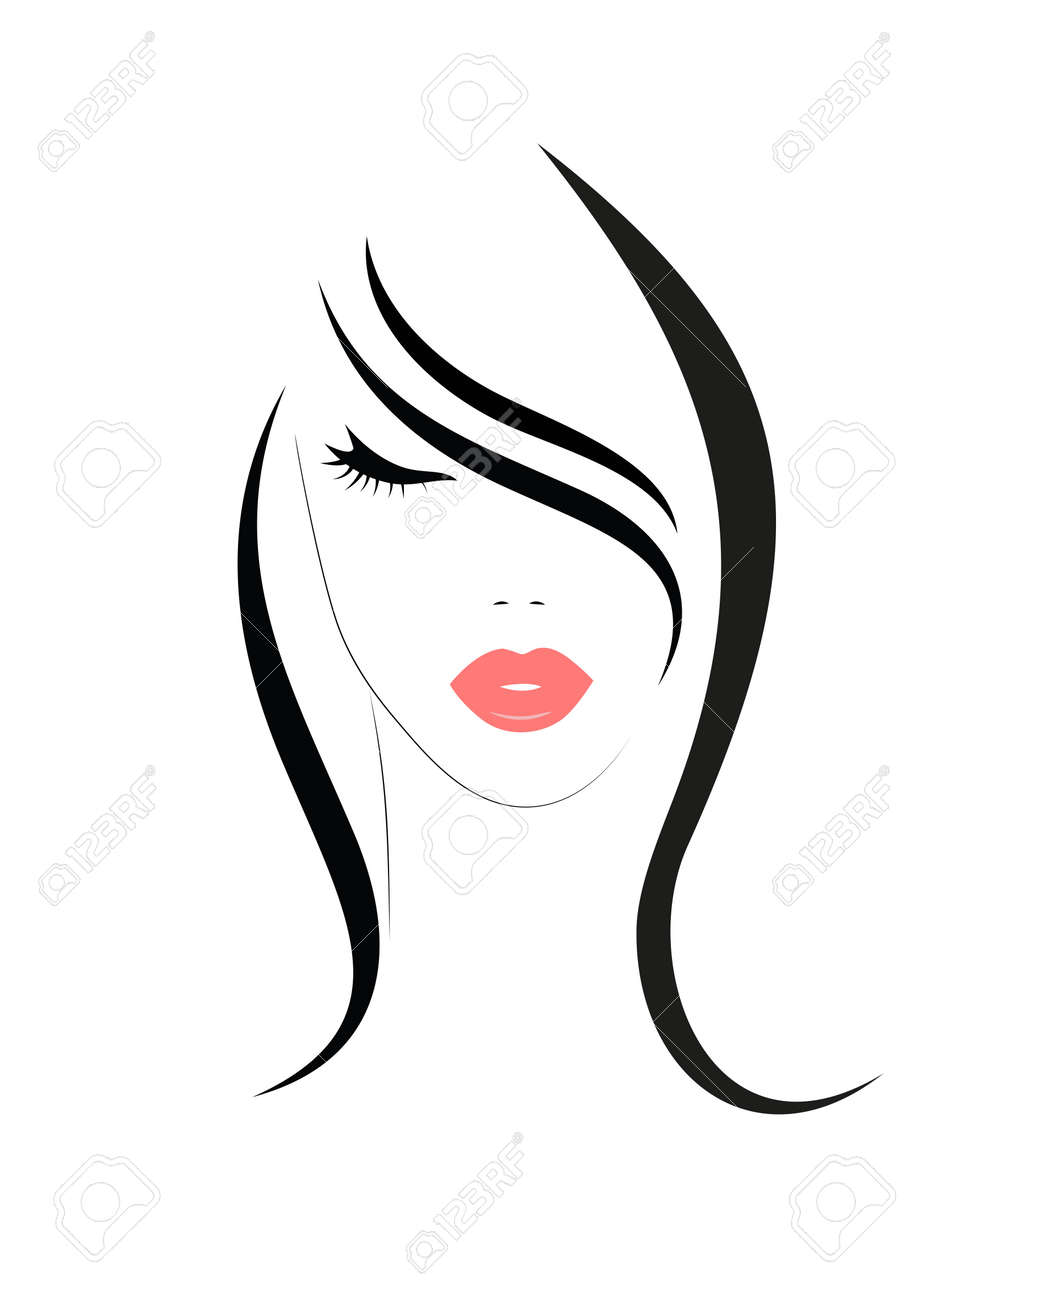 Logo of the woman with long hair - 166489443